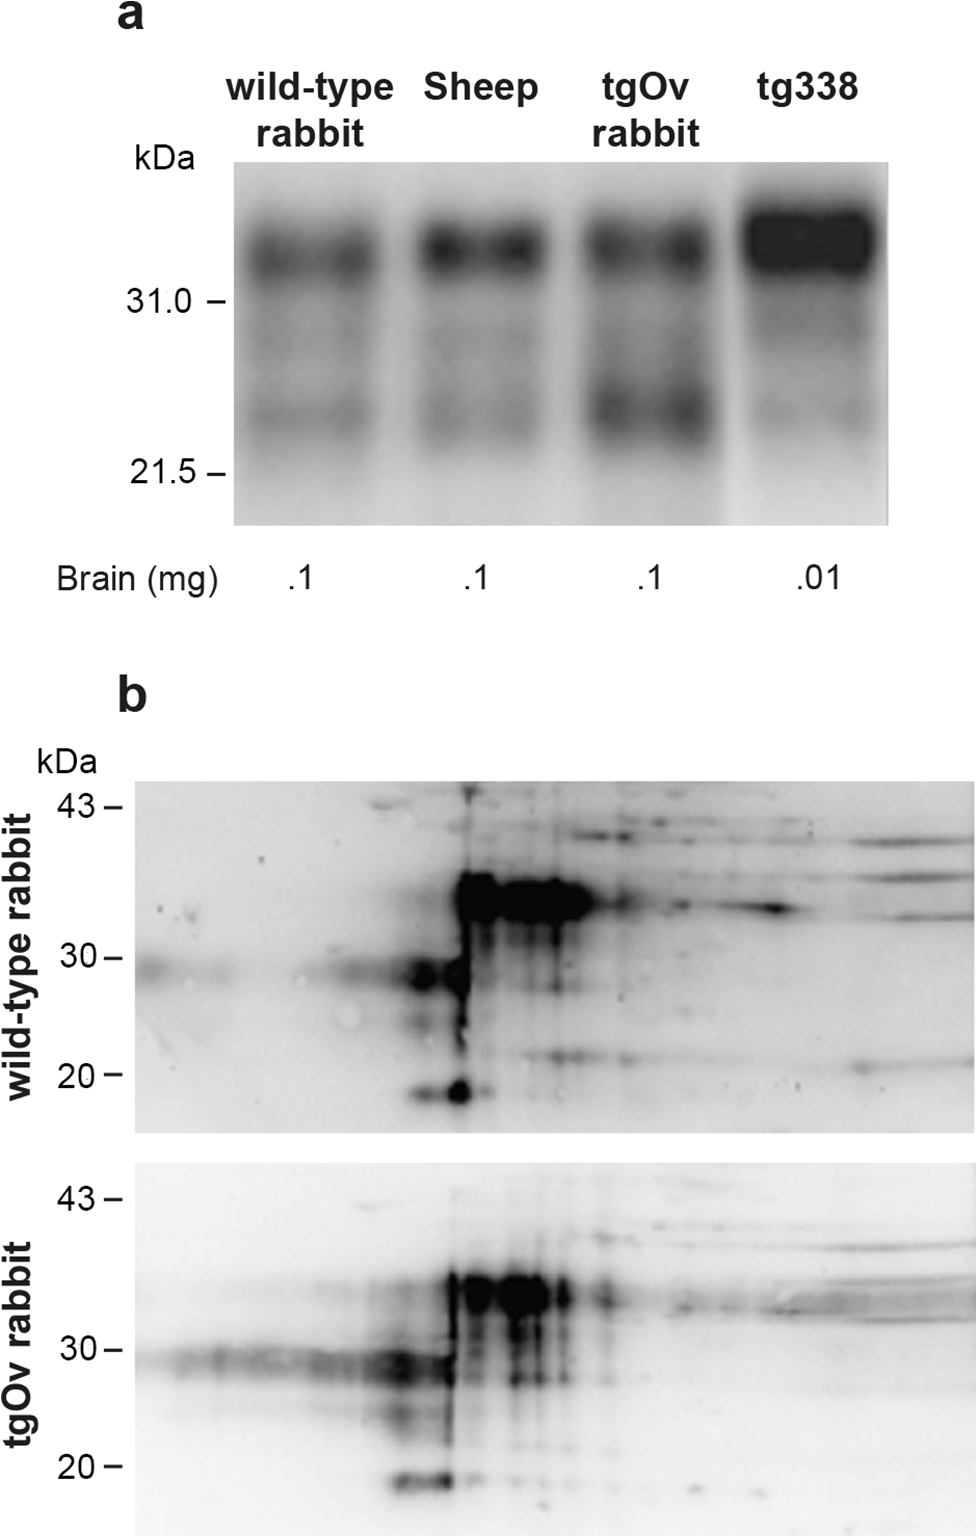 Imunoblot analyses of PrP in the brains of wild-type and ovine PrP transgenic rabbits.